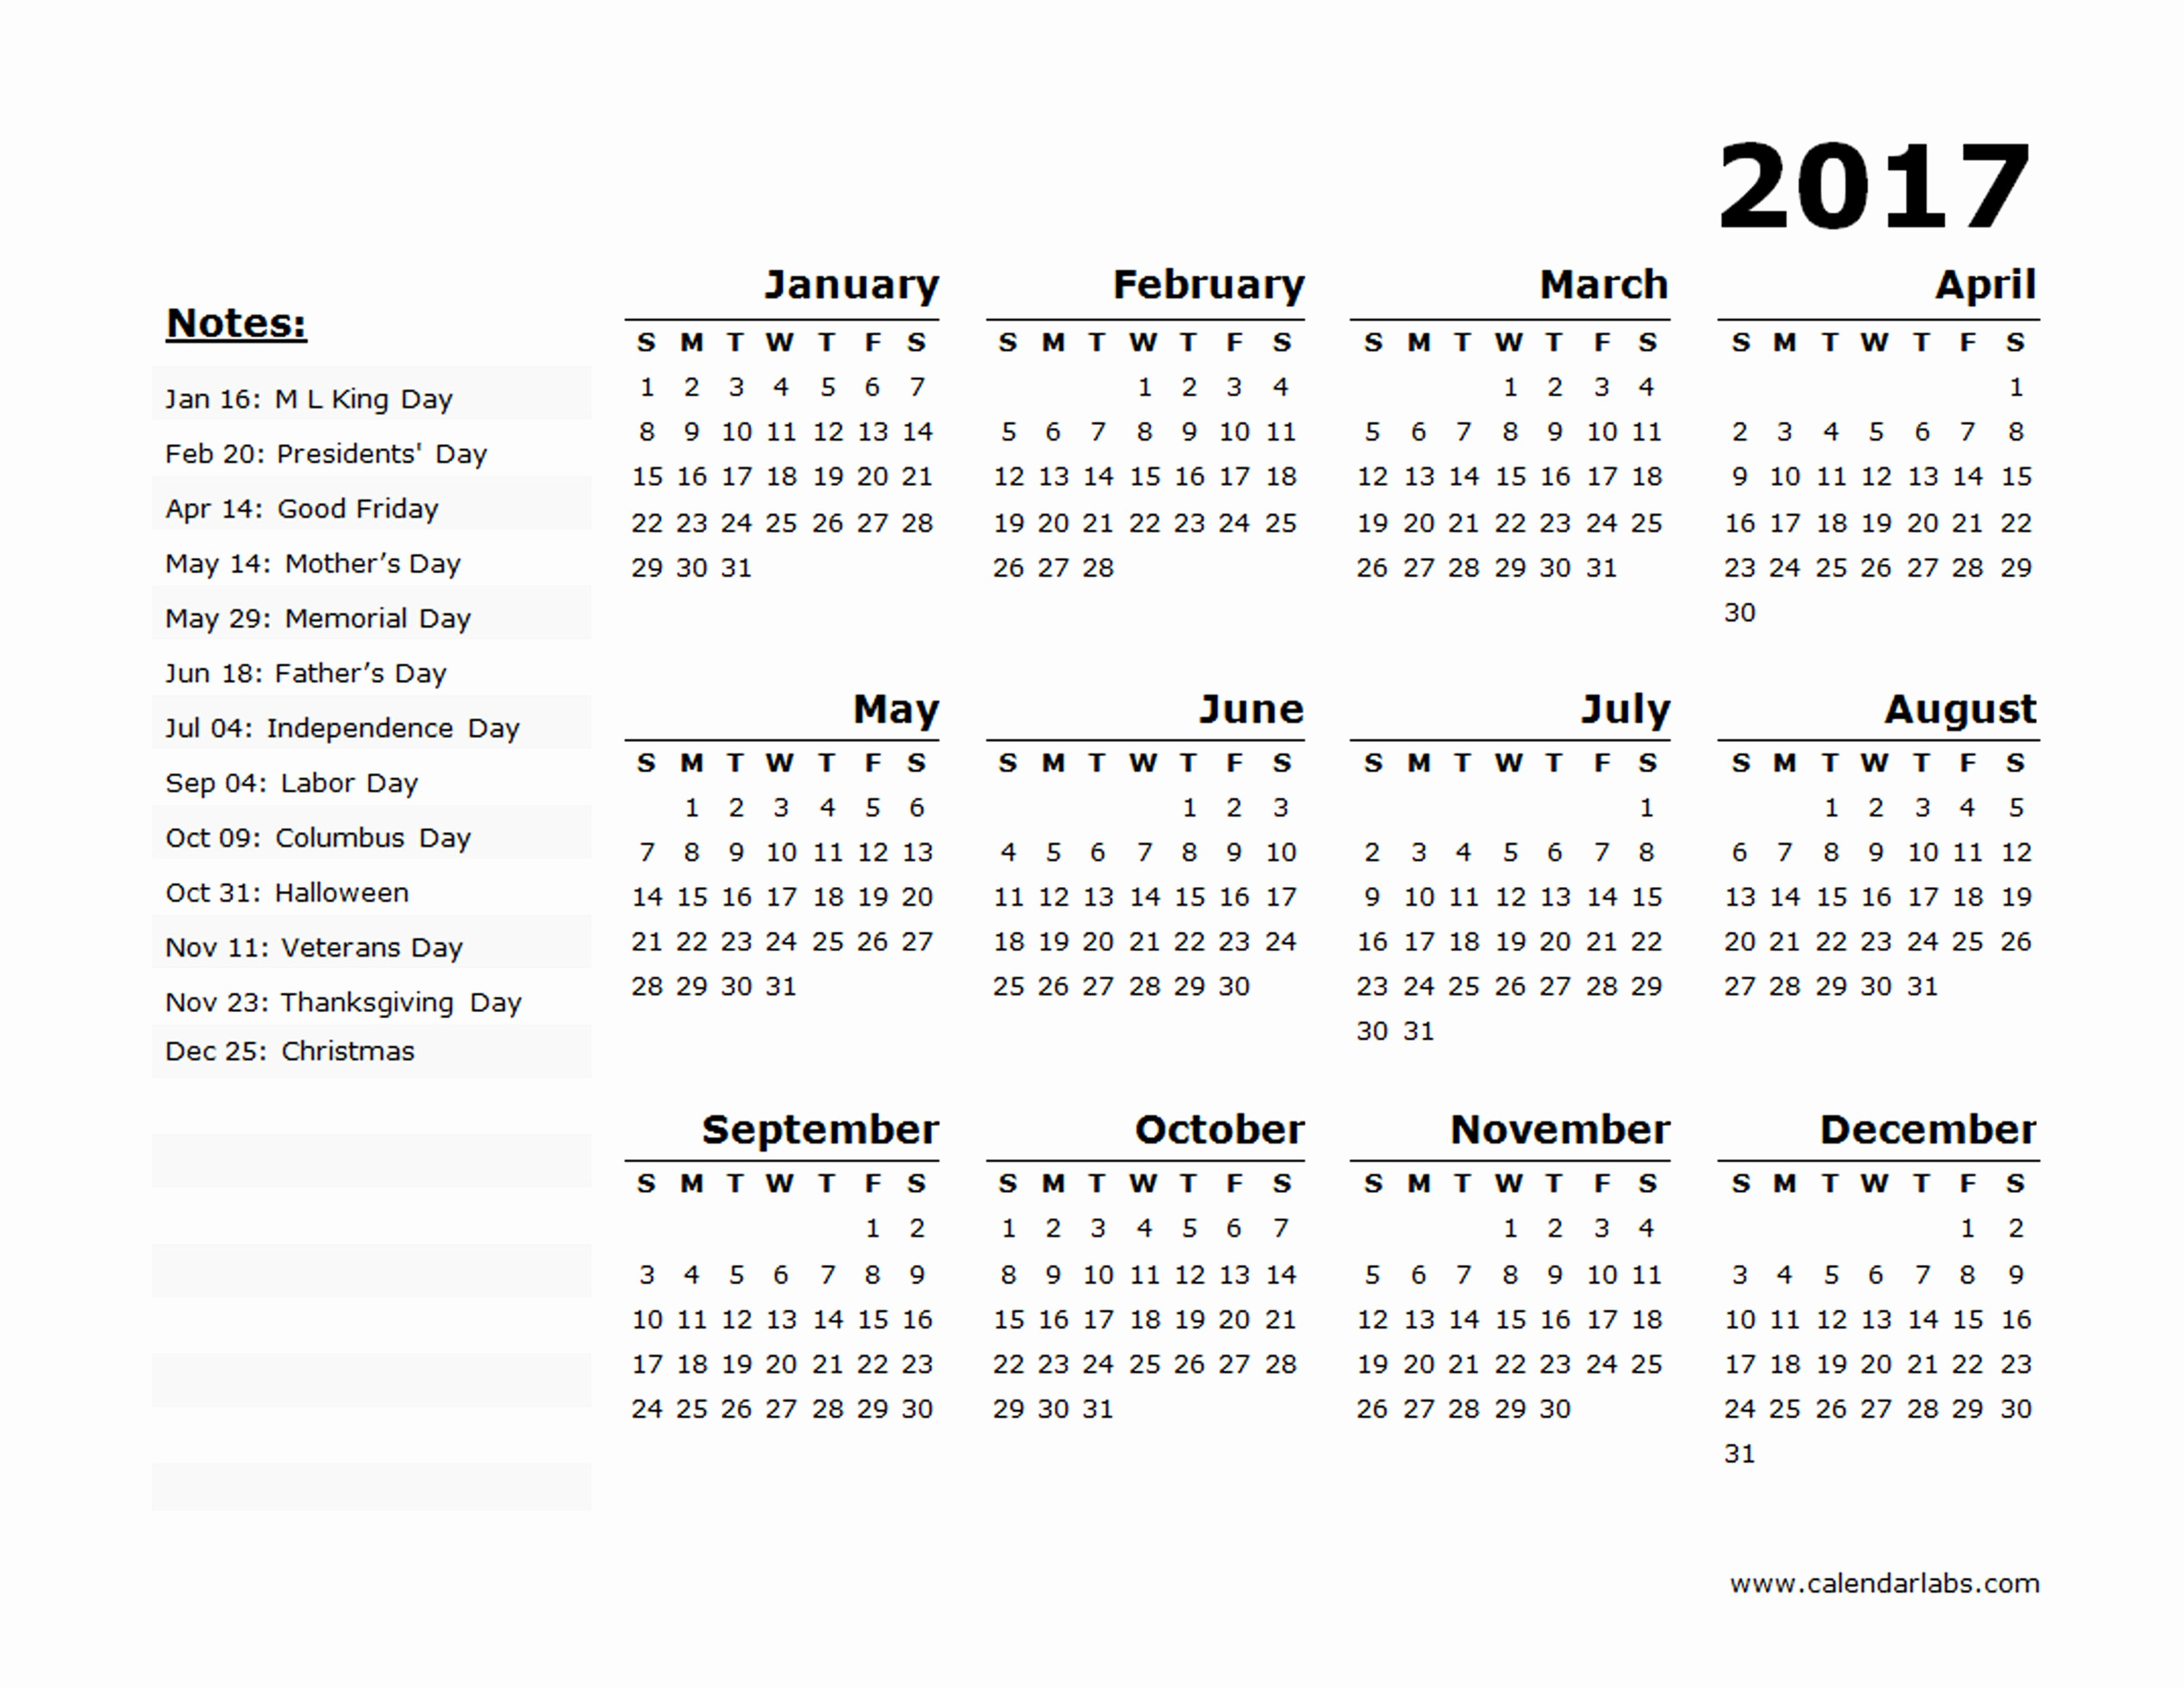 2017 Yearly Calendar Excel Template Beautiful 2017 Year Calendar Template Us Holidays 02 Free